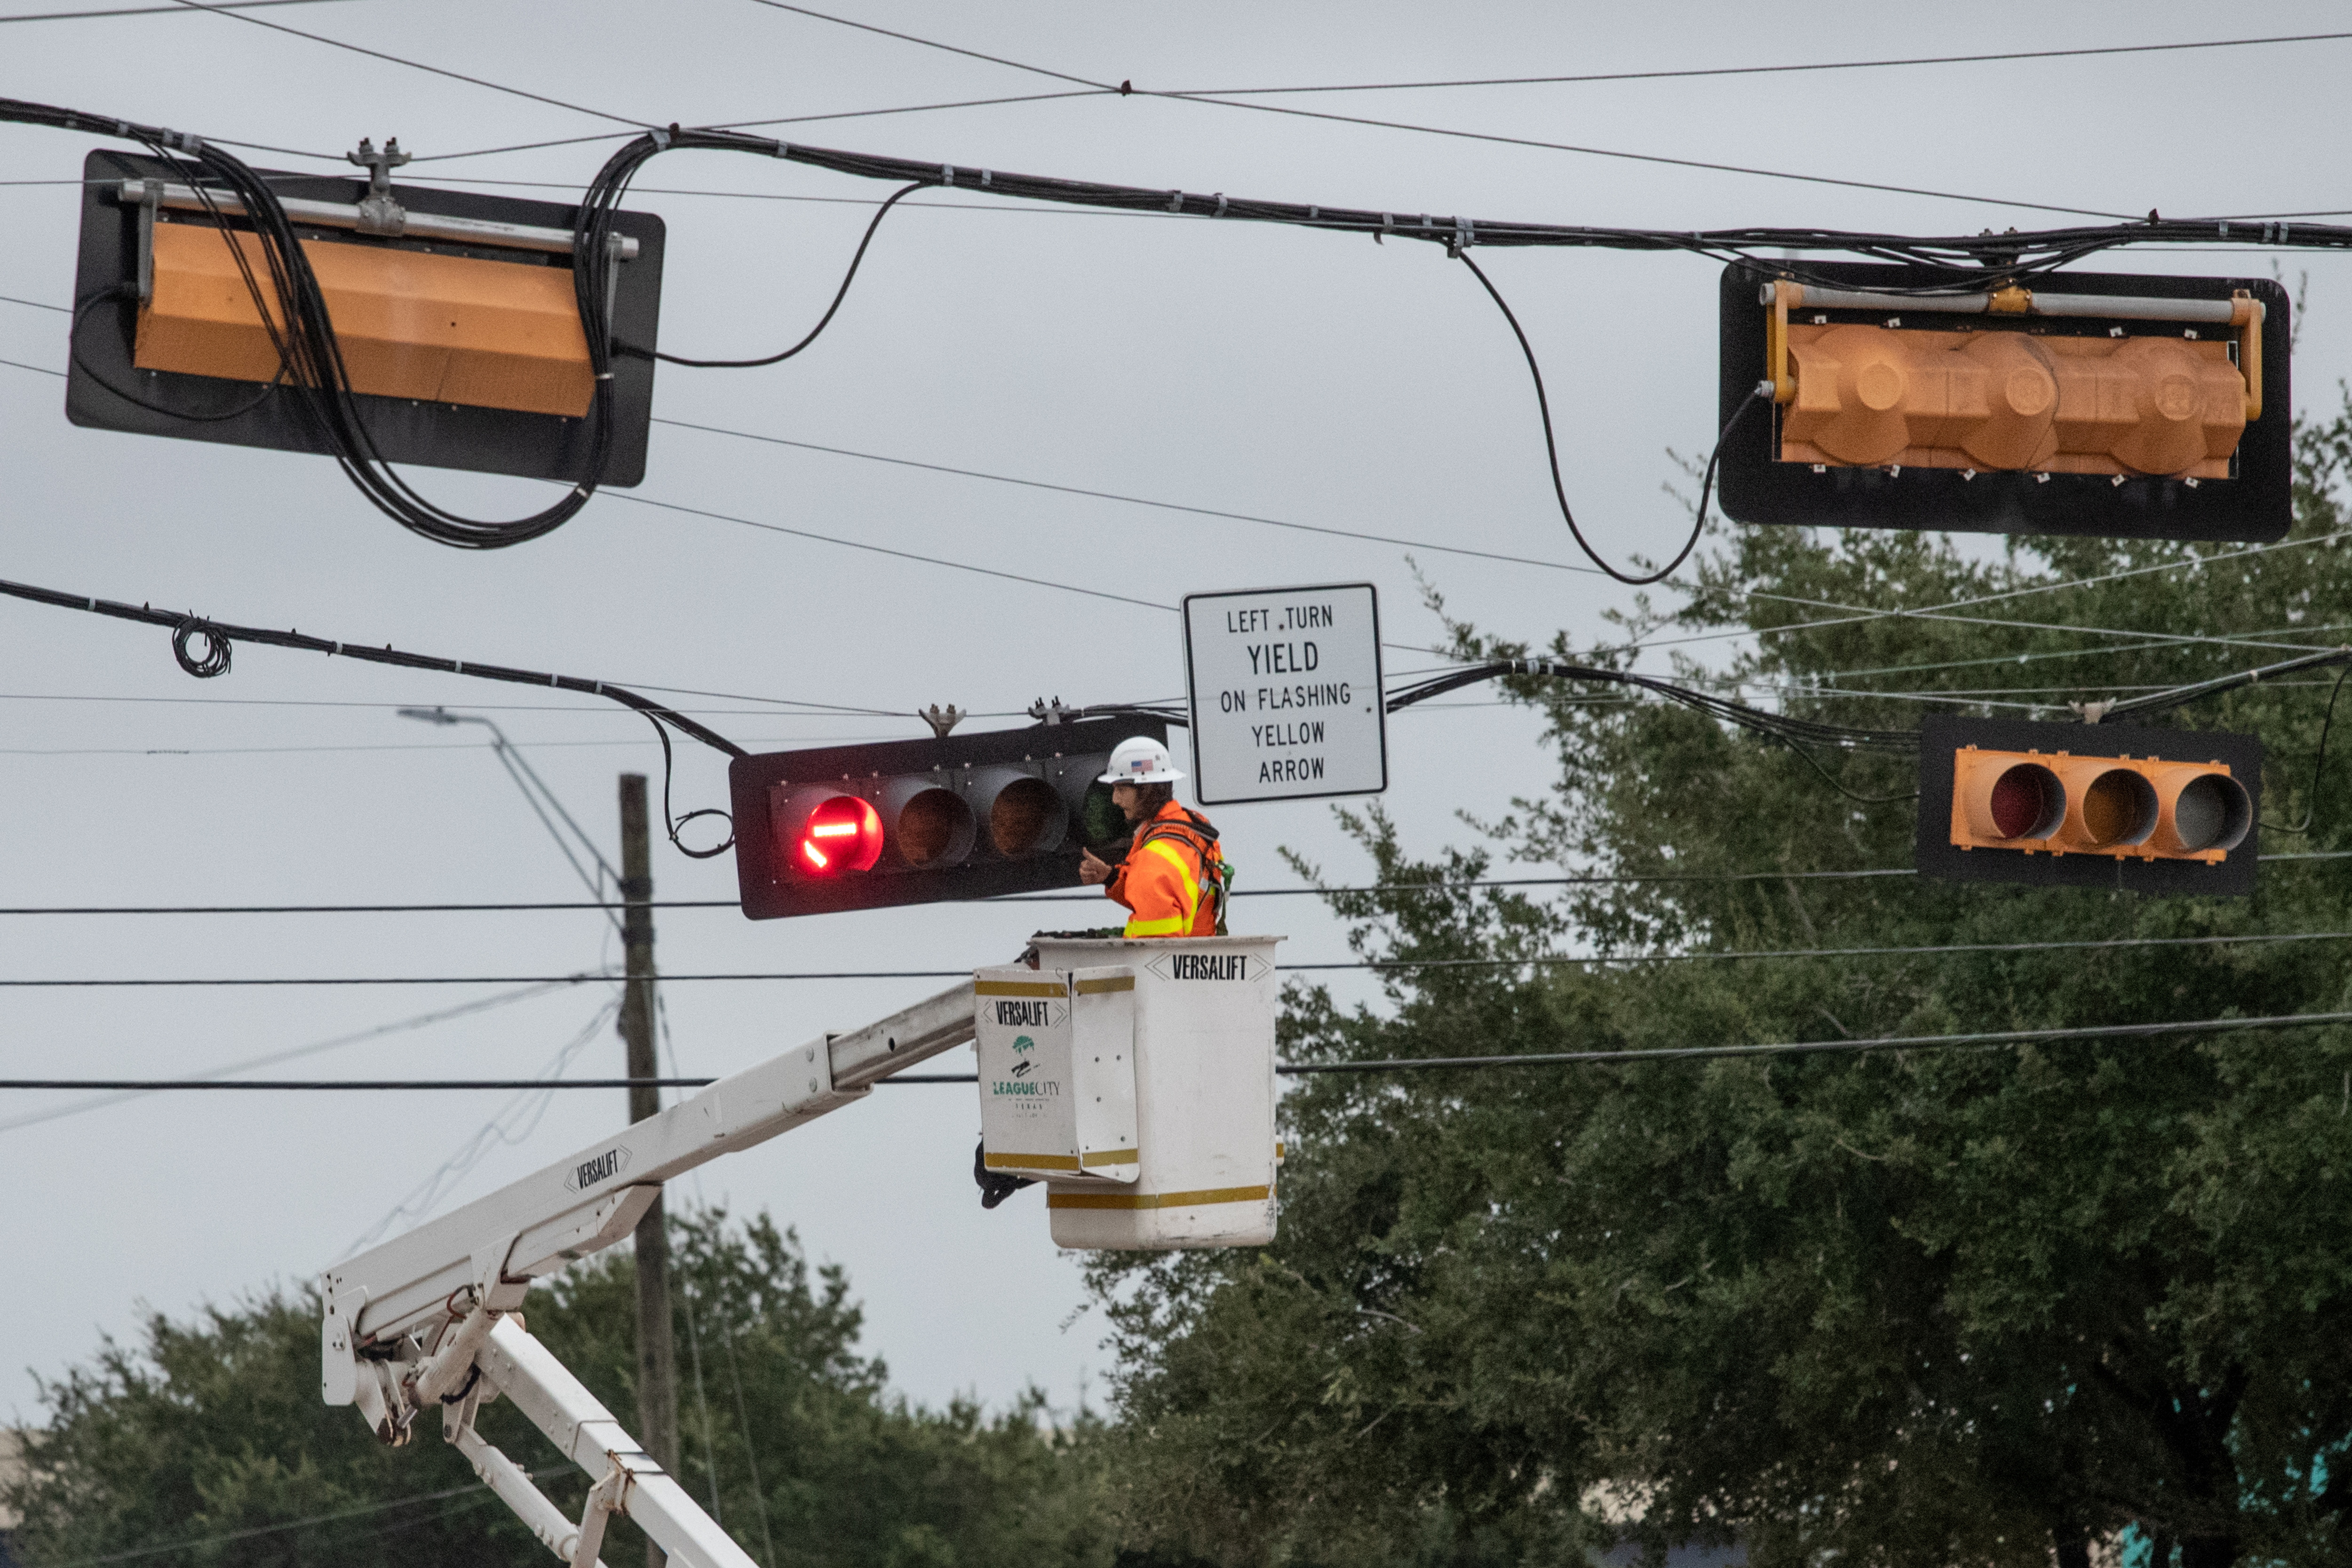 A worker restores power to traffic lights in the aftermath of Hurricane Nicholas in League City, Texas, U.S., September 14, 2021. REUTERS/Adrees Latif